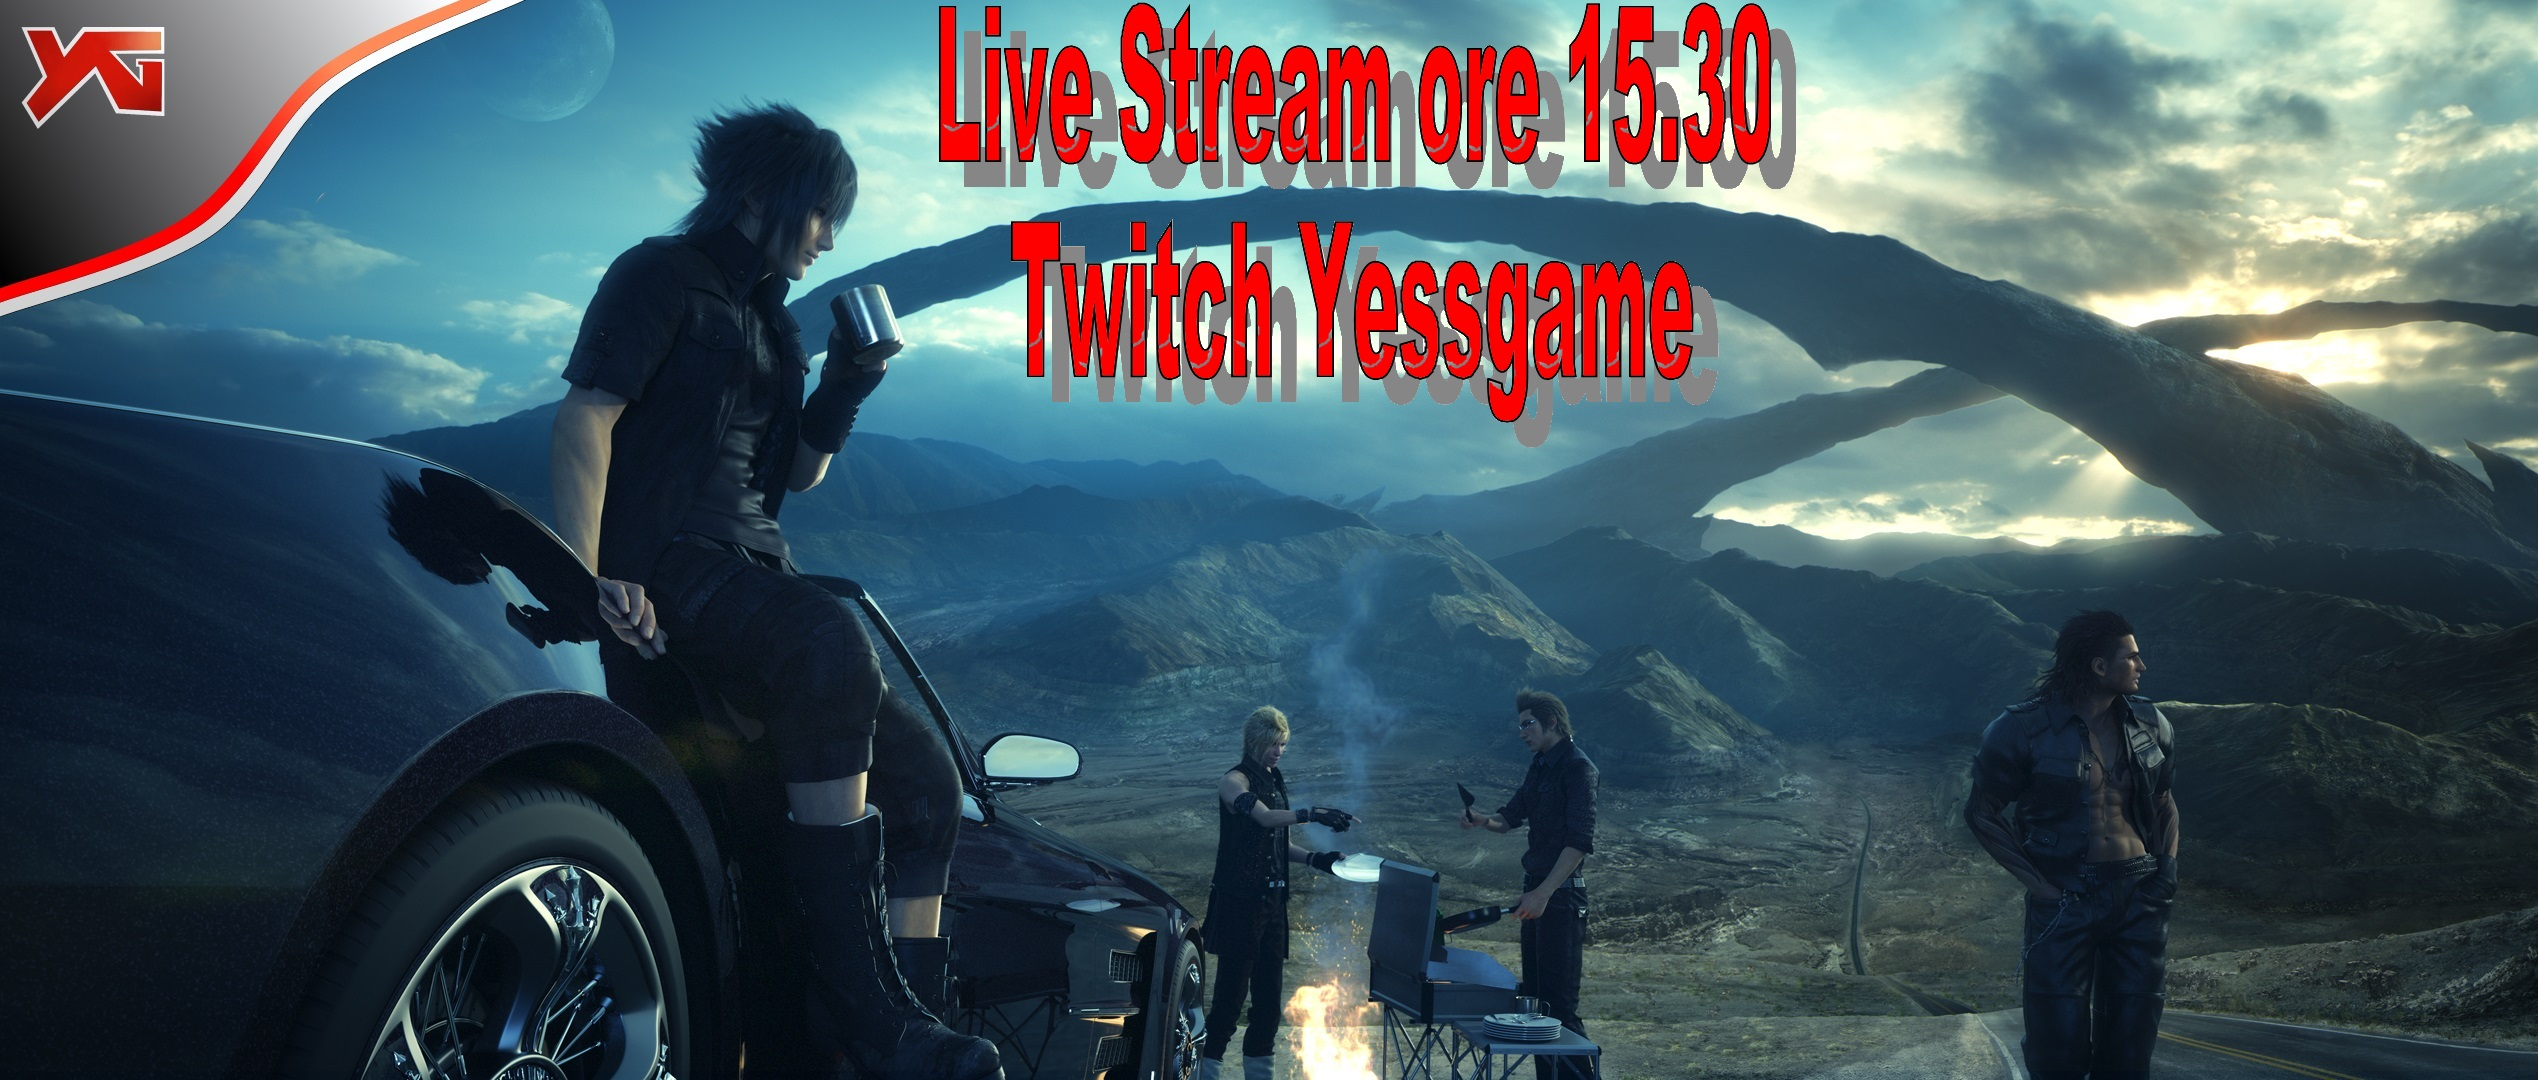 Final Fantasy XV live stream su Twitch